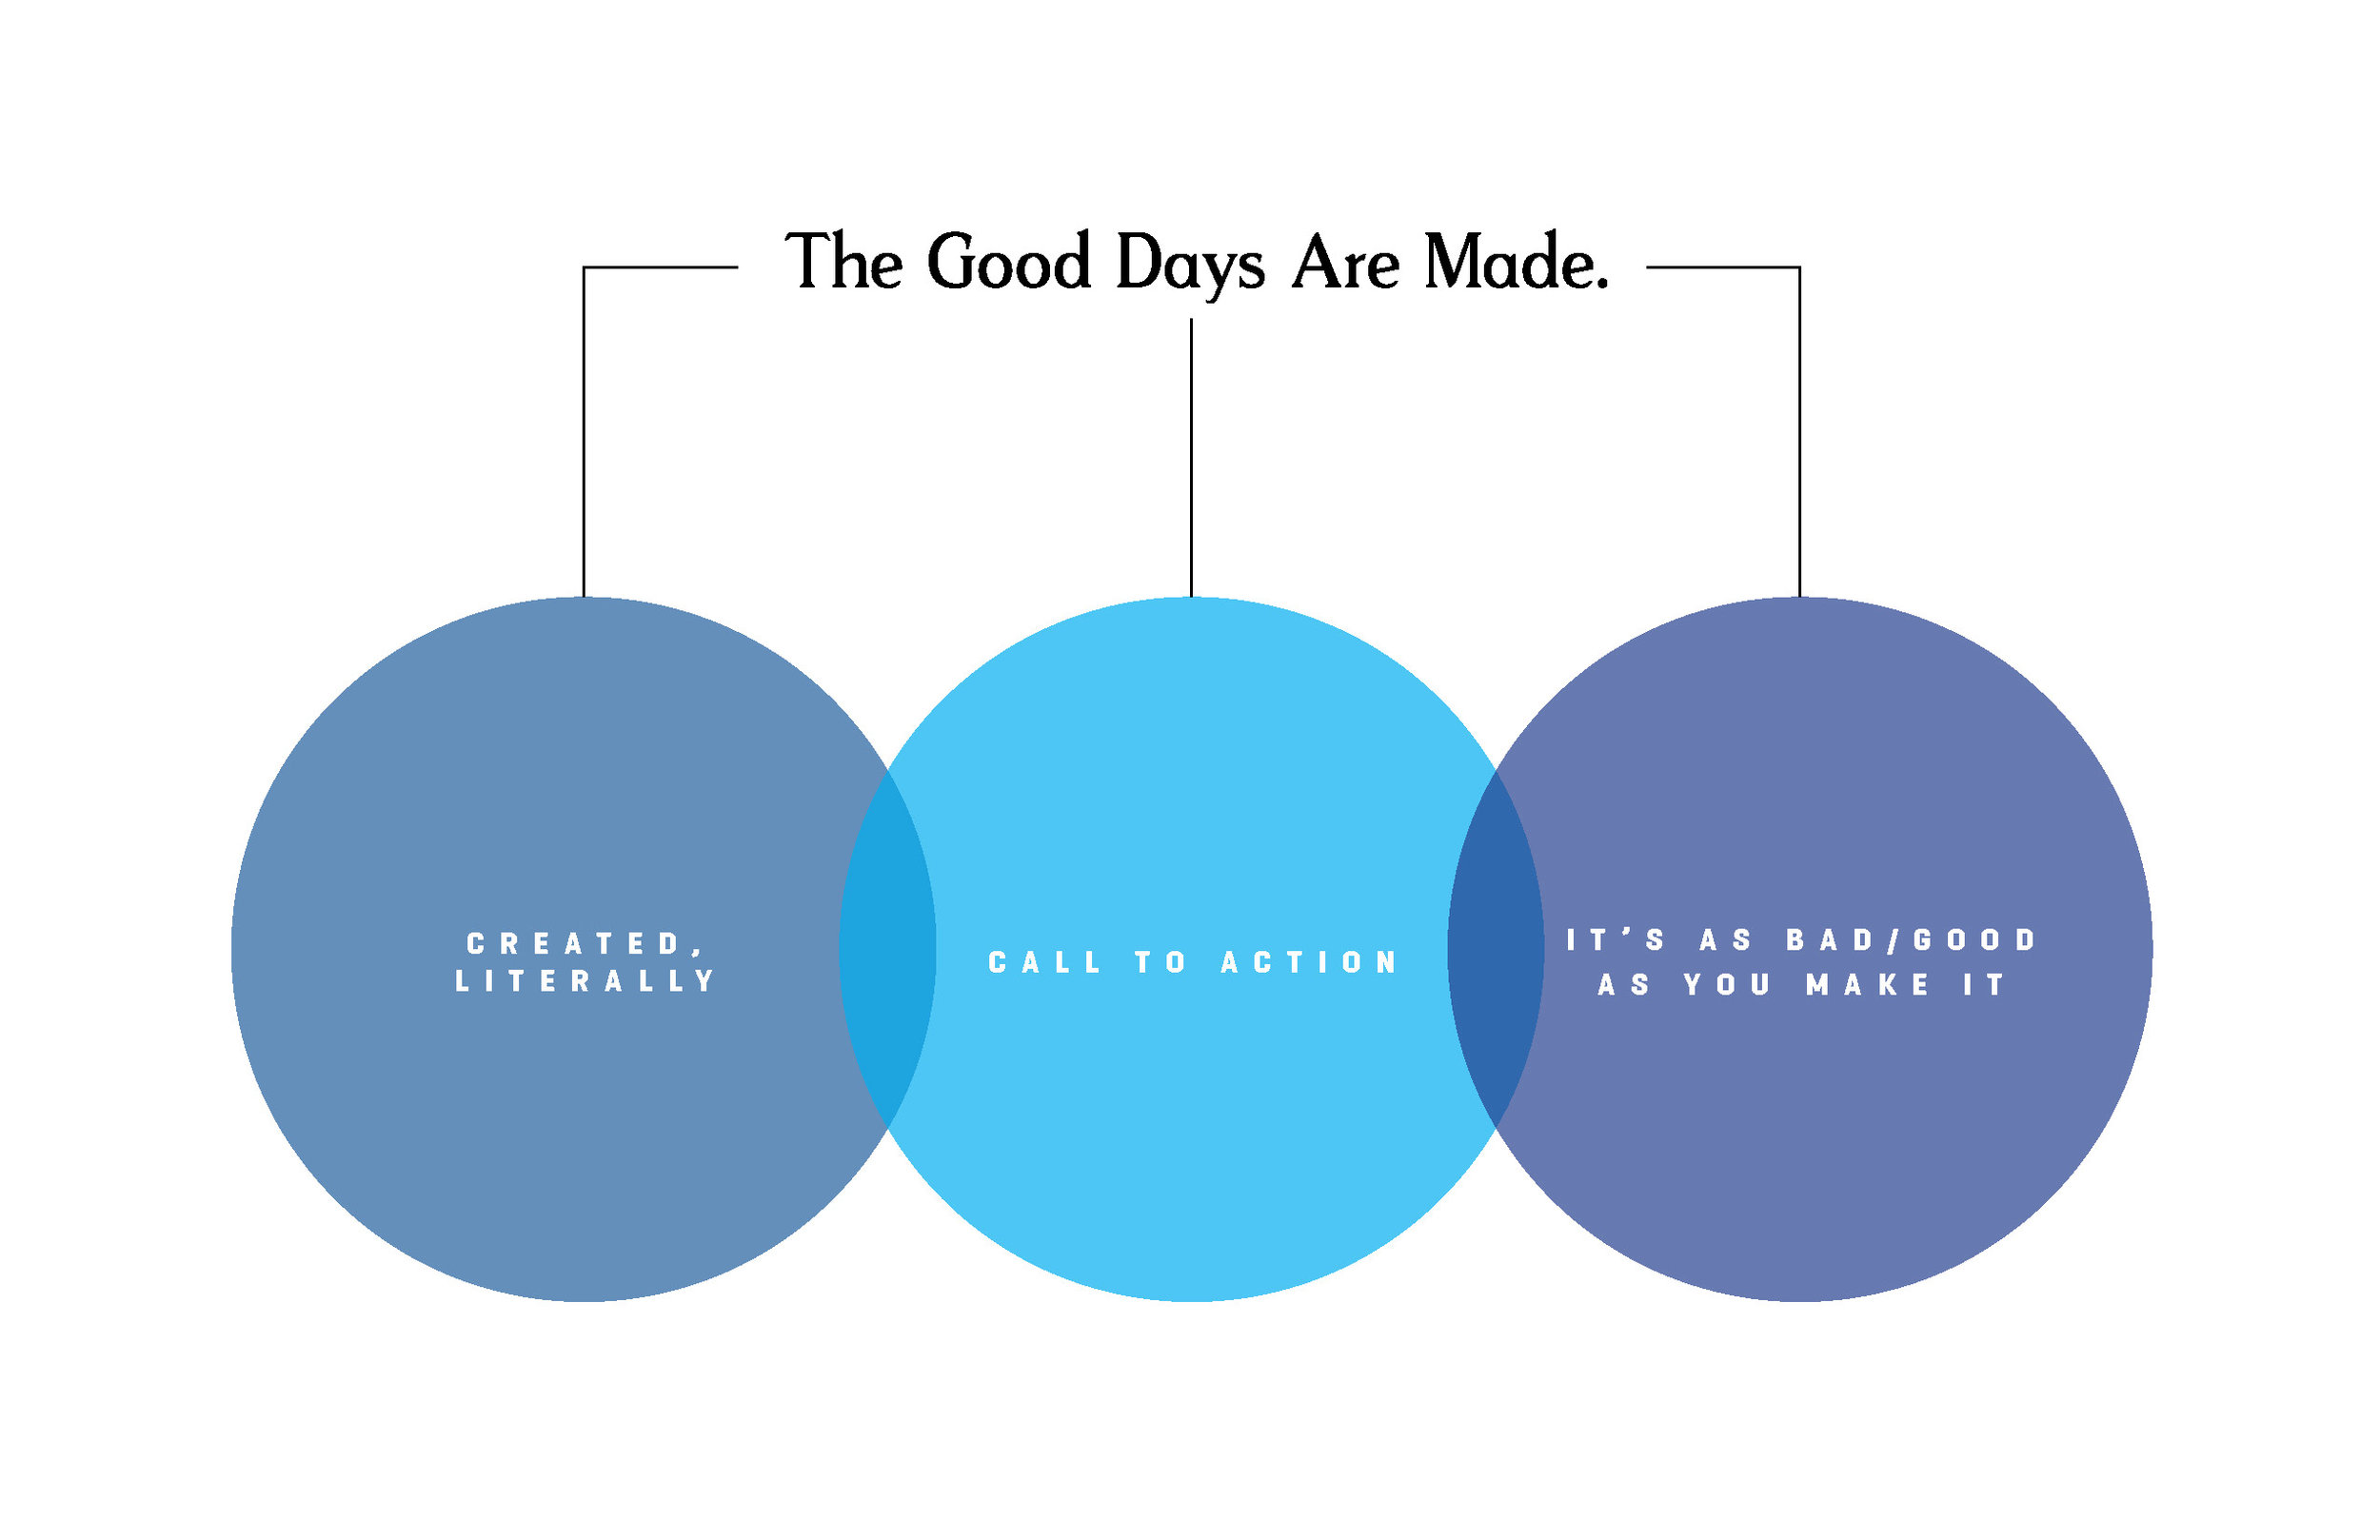 18_The_Good_Days_Are_Made_Campaign_Guidelines_Page_10.jpg